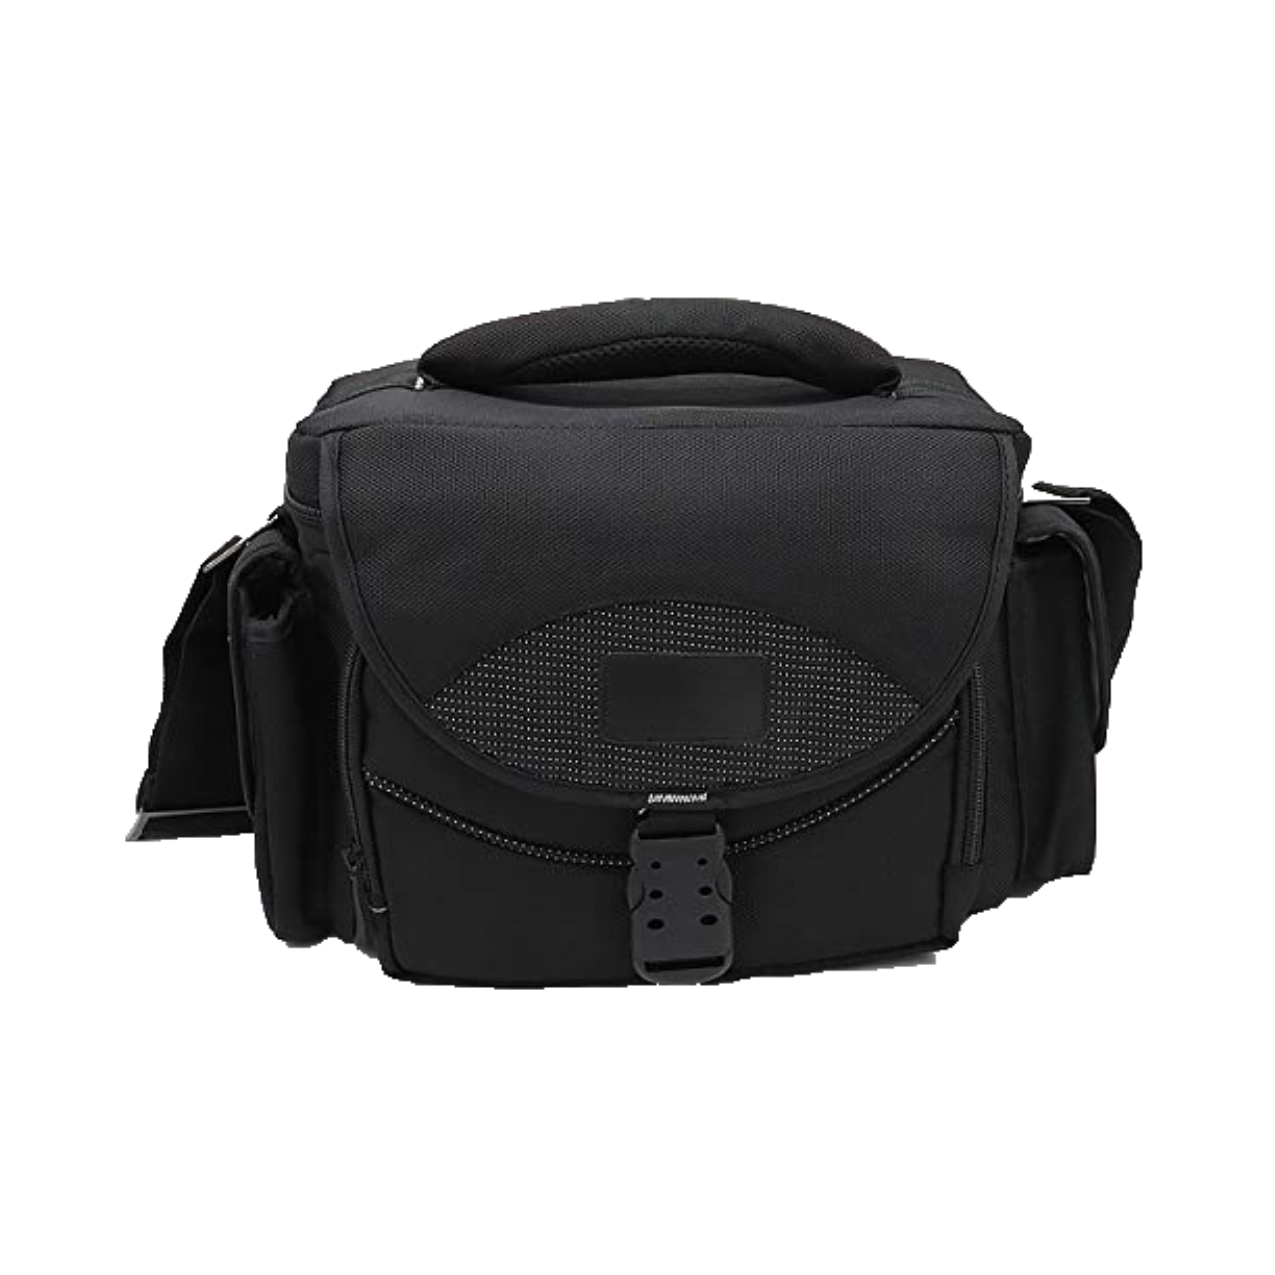 Solibag Shoulder Case -3000 Large Dslr Gadget Bag (Gray Interior) Camera Bags Camera Bags